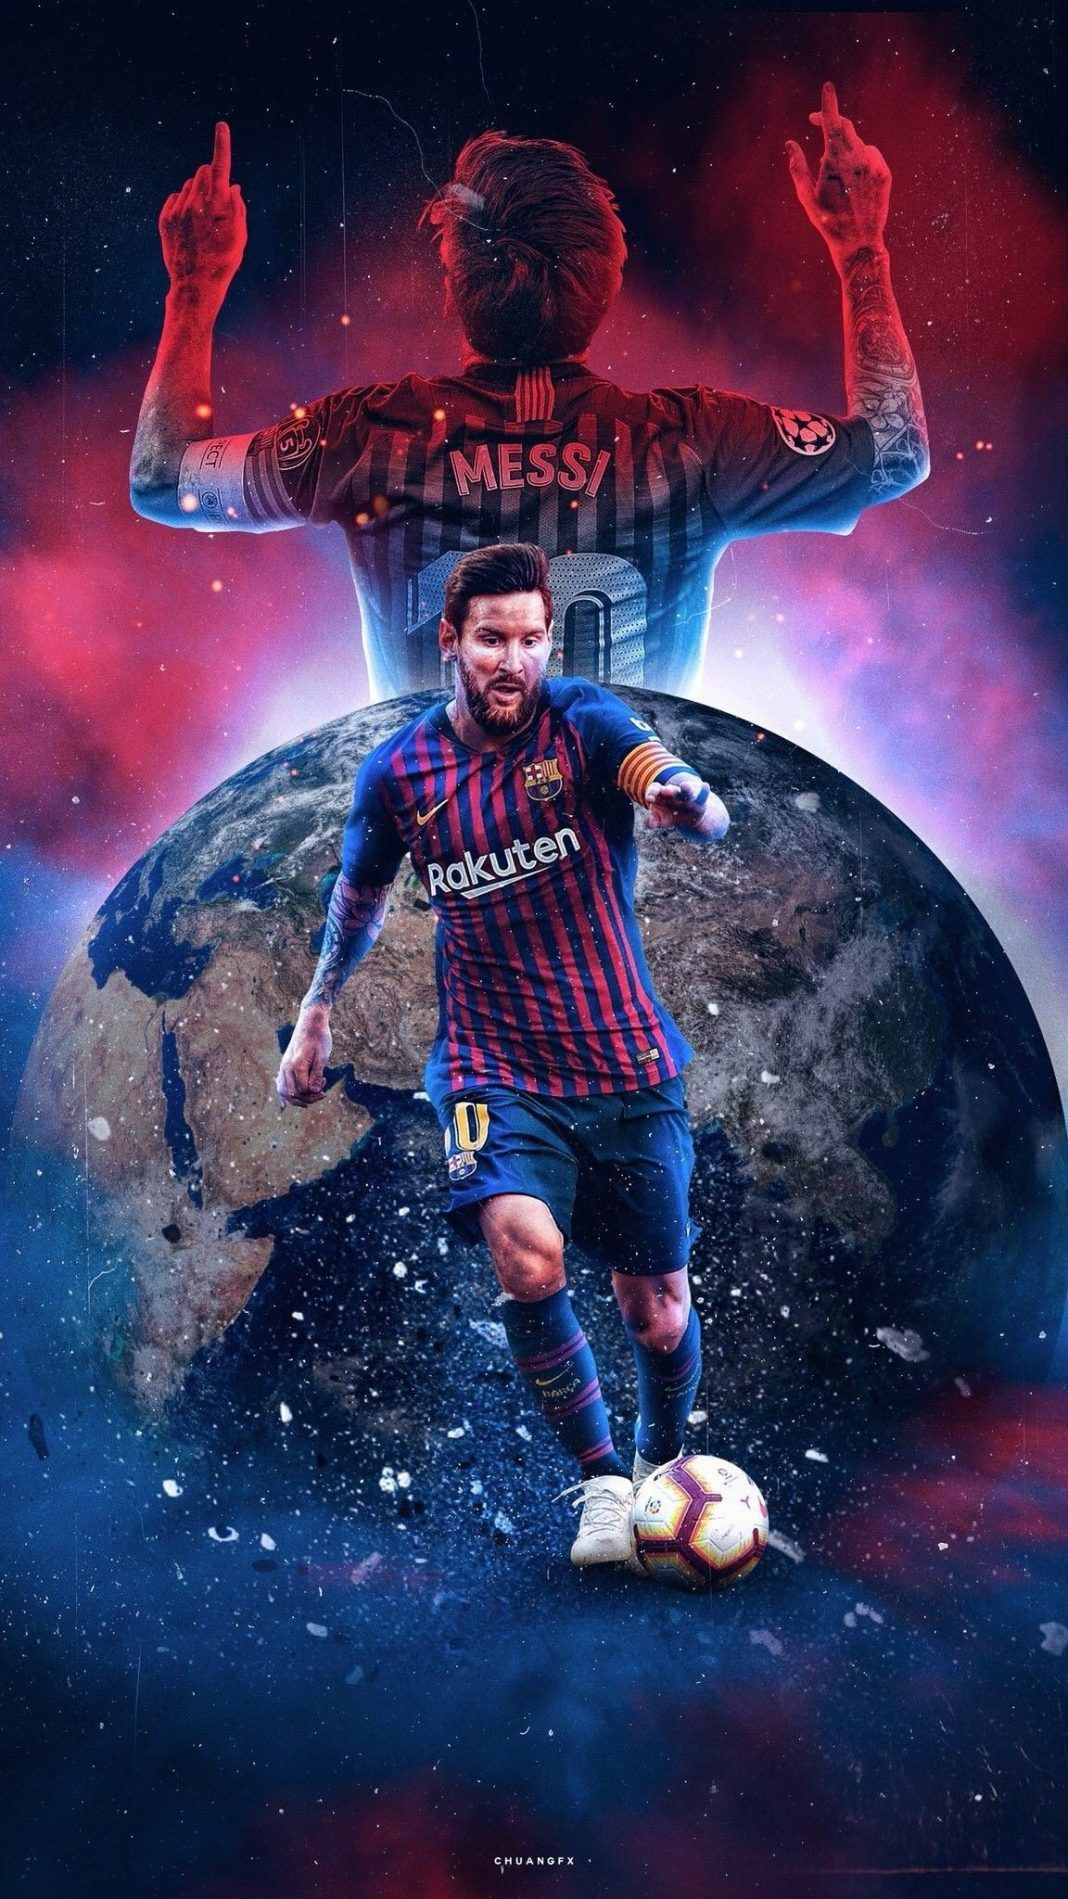 Lionel Messi Wallpaper Lionel Messi Wallpapers Messi Vs Ronaldo Lionel Messi Barcelona